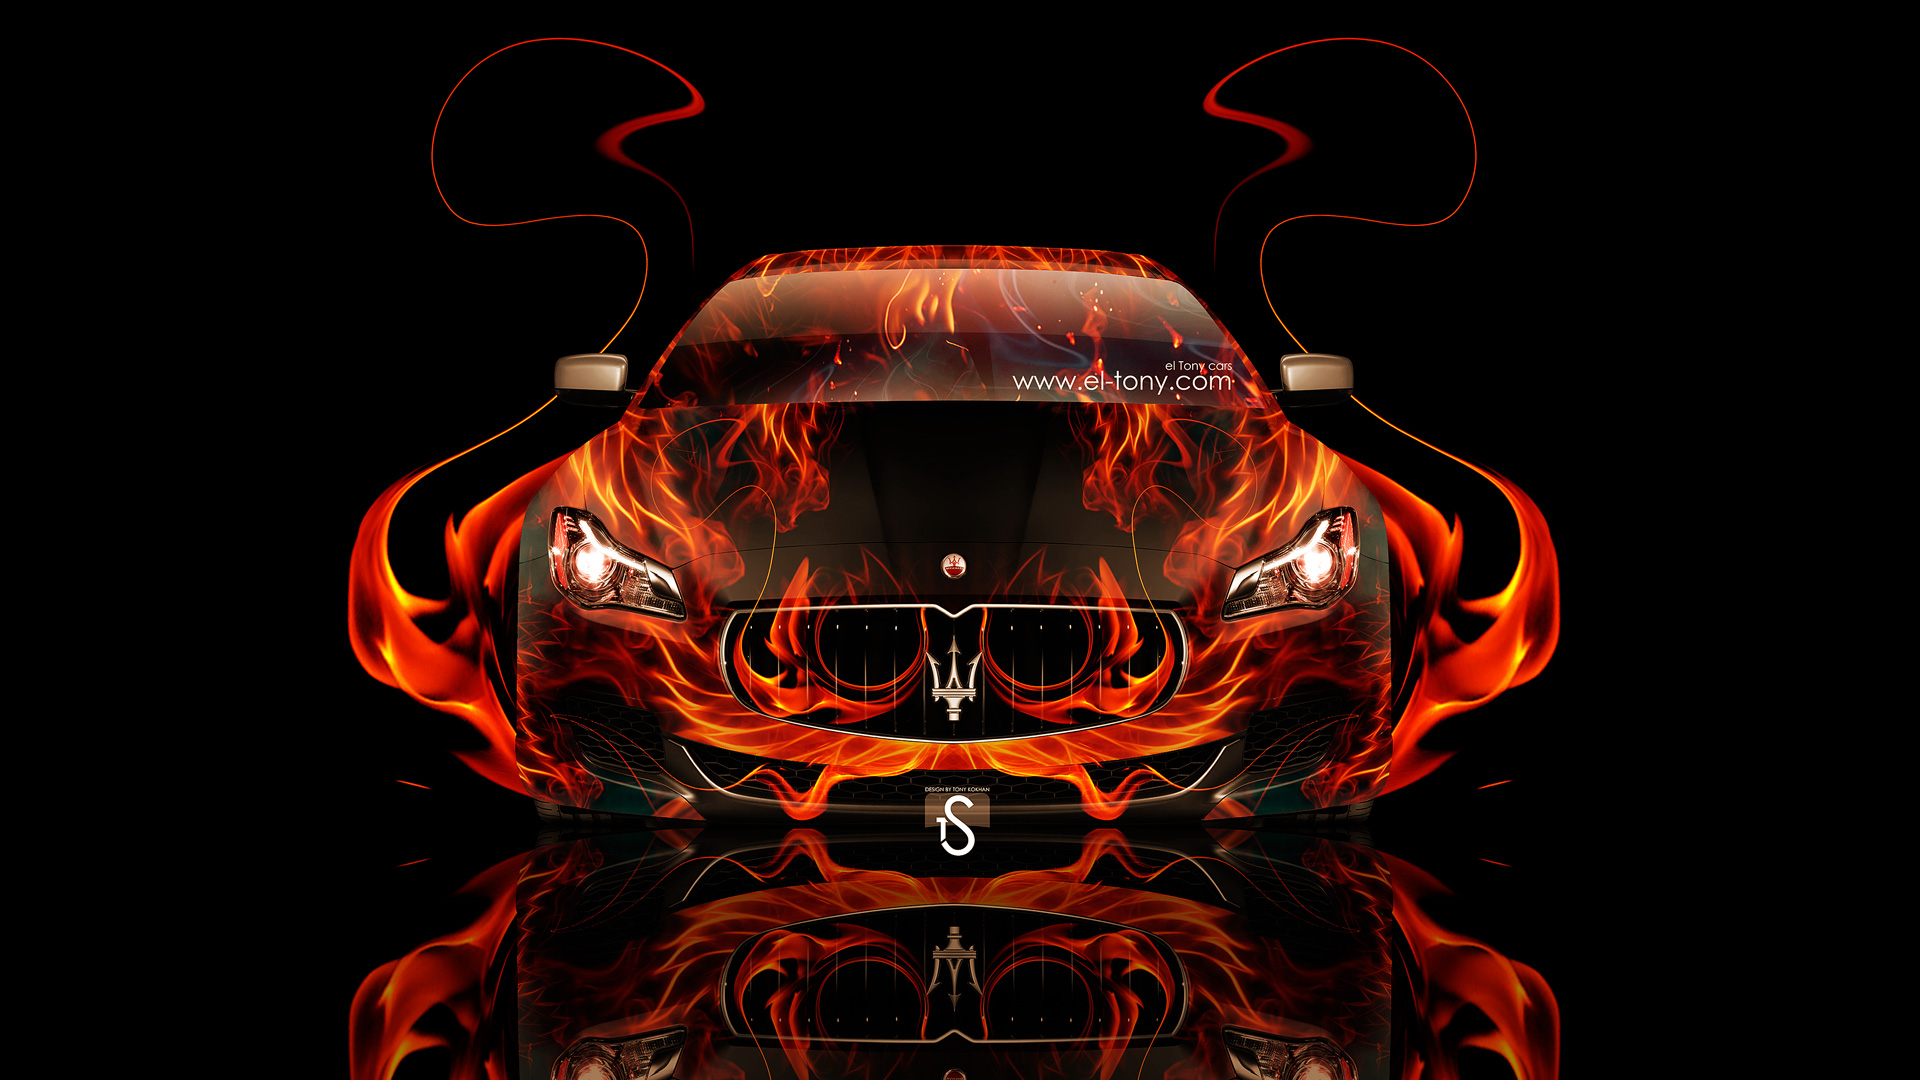 Charming Maserati Quattroporte Fire Abstract Car 2014 Design By